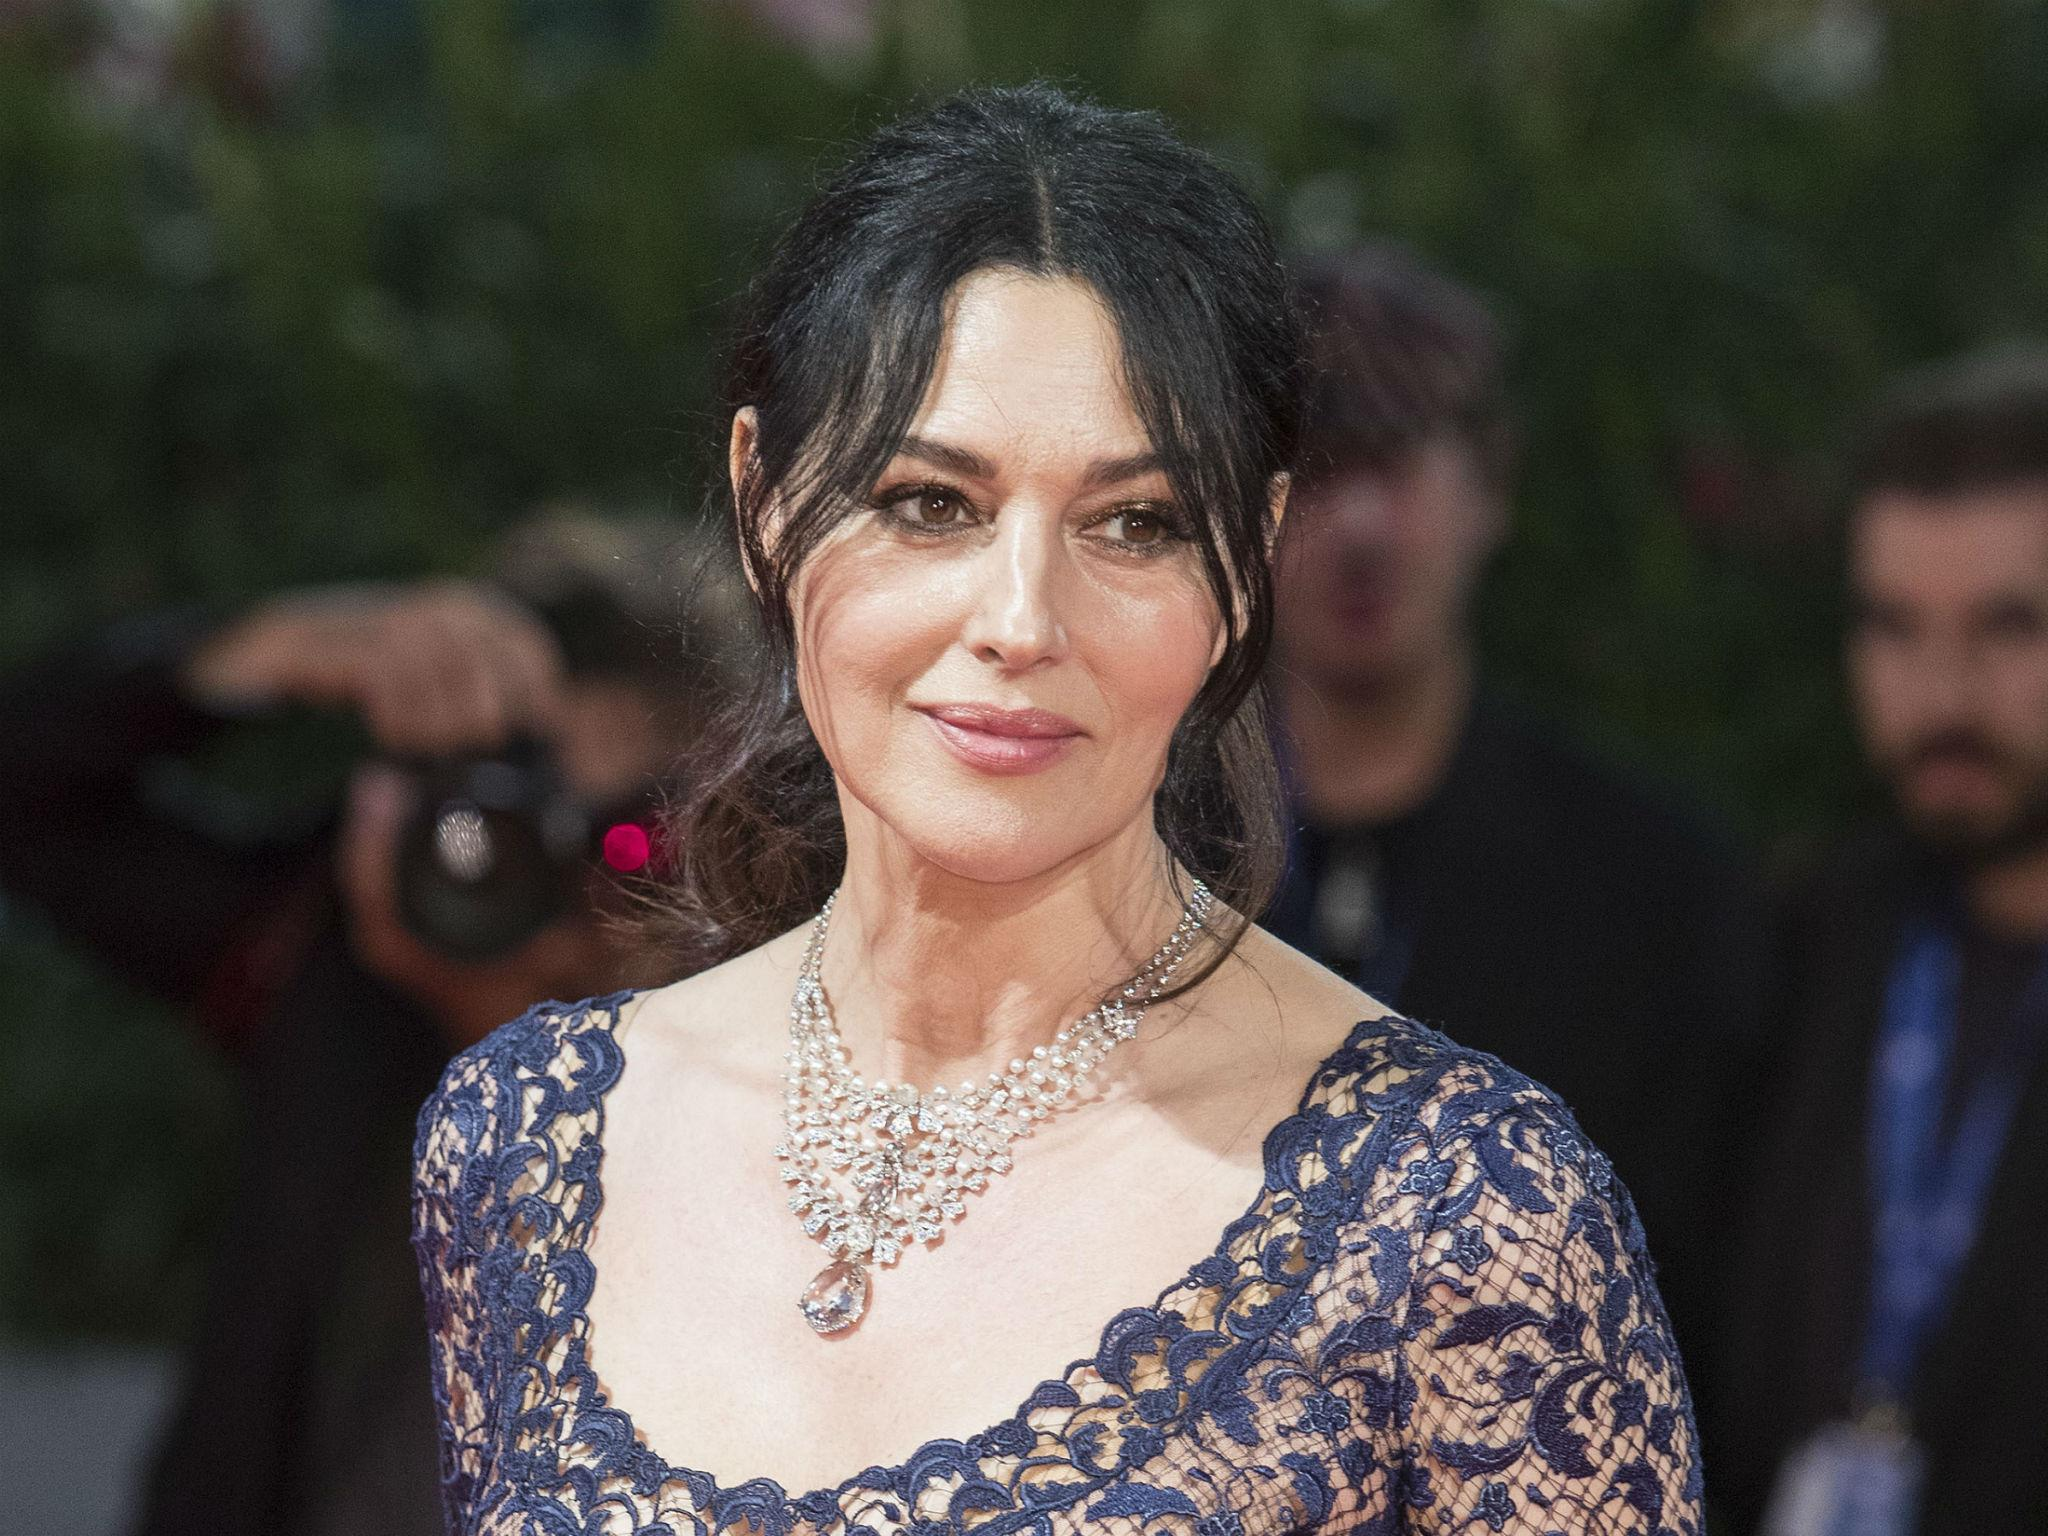 monica bellucci interview 39 love and sexuality is a matter of energy not age 39 the independent. Black Bedroom Furniture Sets. Home Design Ideas